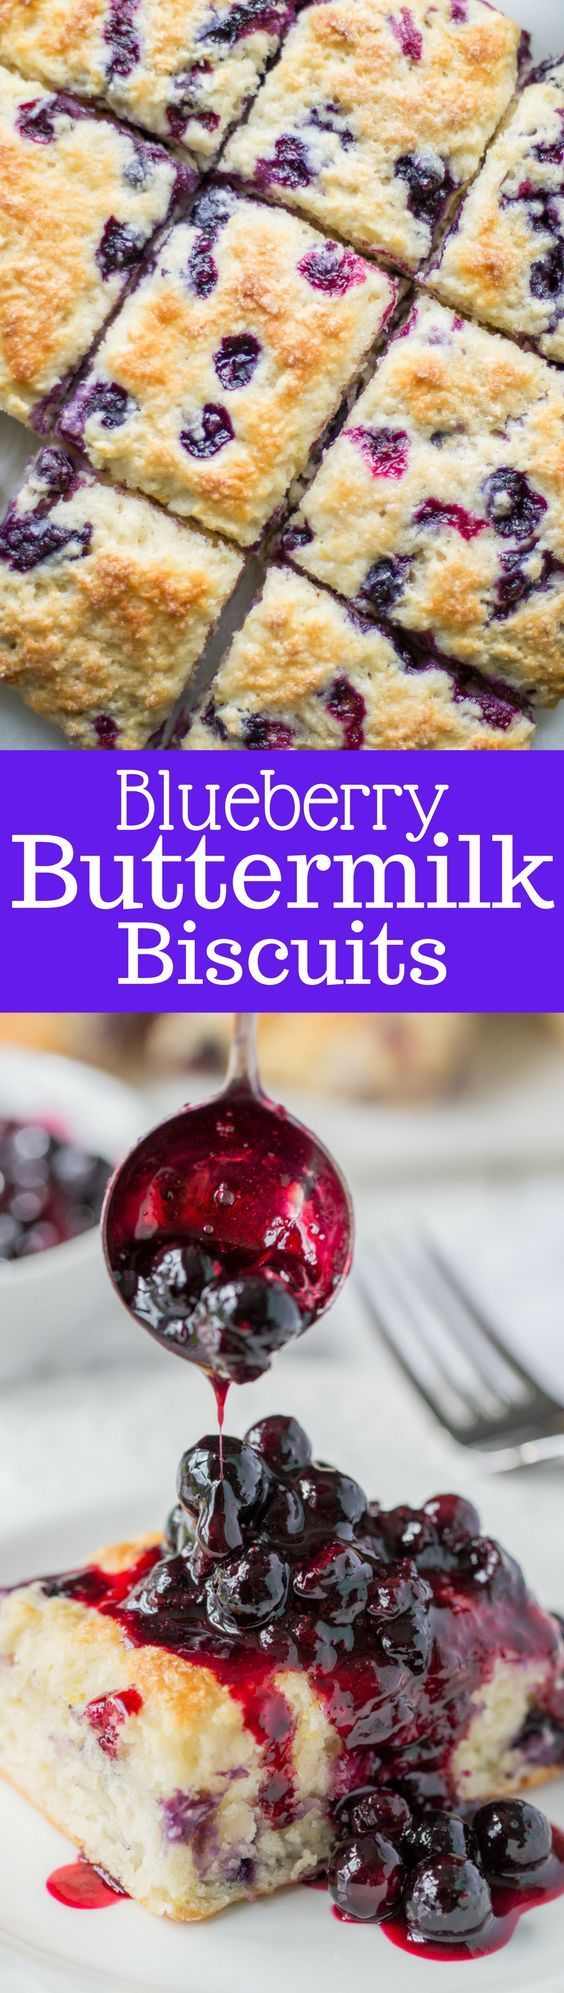 Blueberry Buttermilk Biscuits with a warm Blueberry Sauce ~ from http://www.savingdessert.com